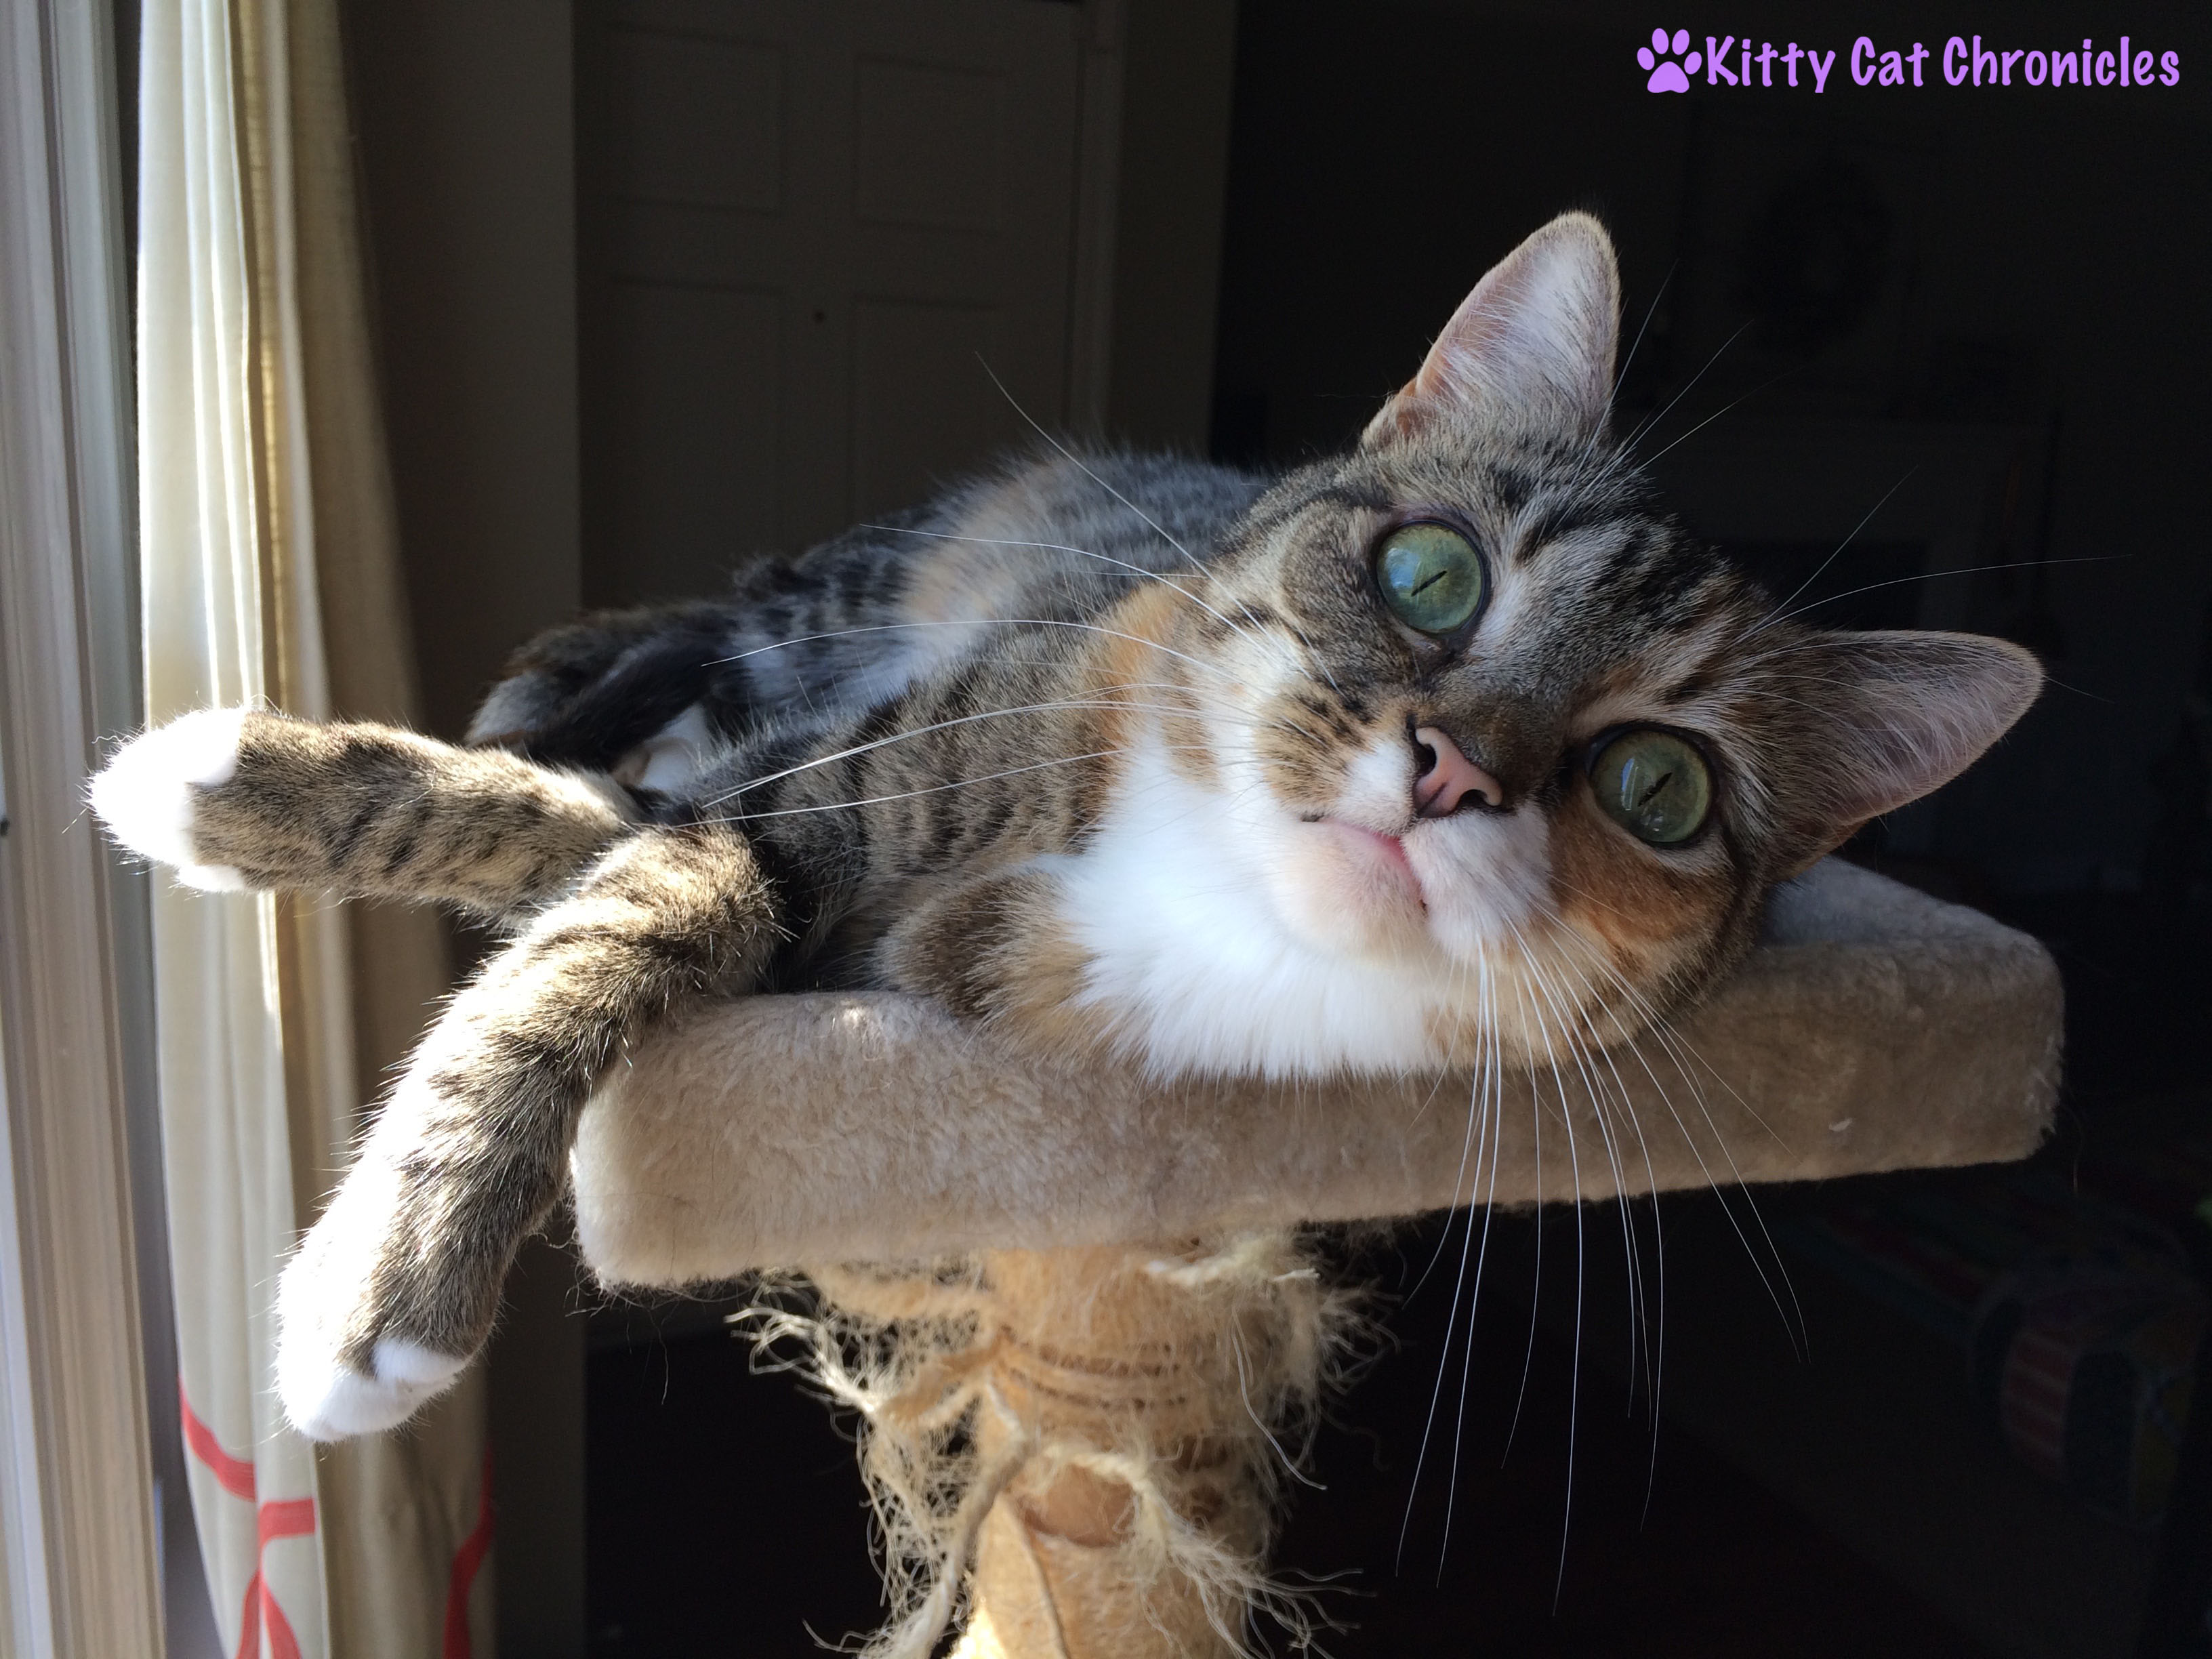 Flirting with Delilah: Cat on a Cat Tree